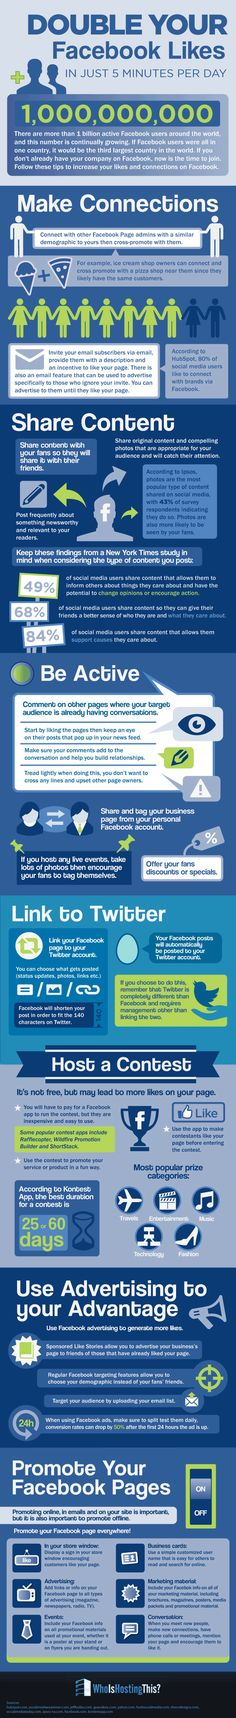 Want to double your Facebook Likes? There are some really terrific tips on this Facebook infographic. Repin or print this to refer to often!